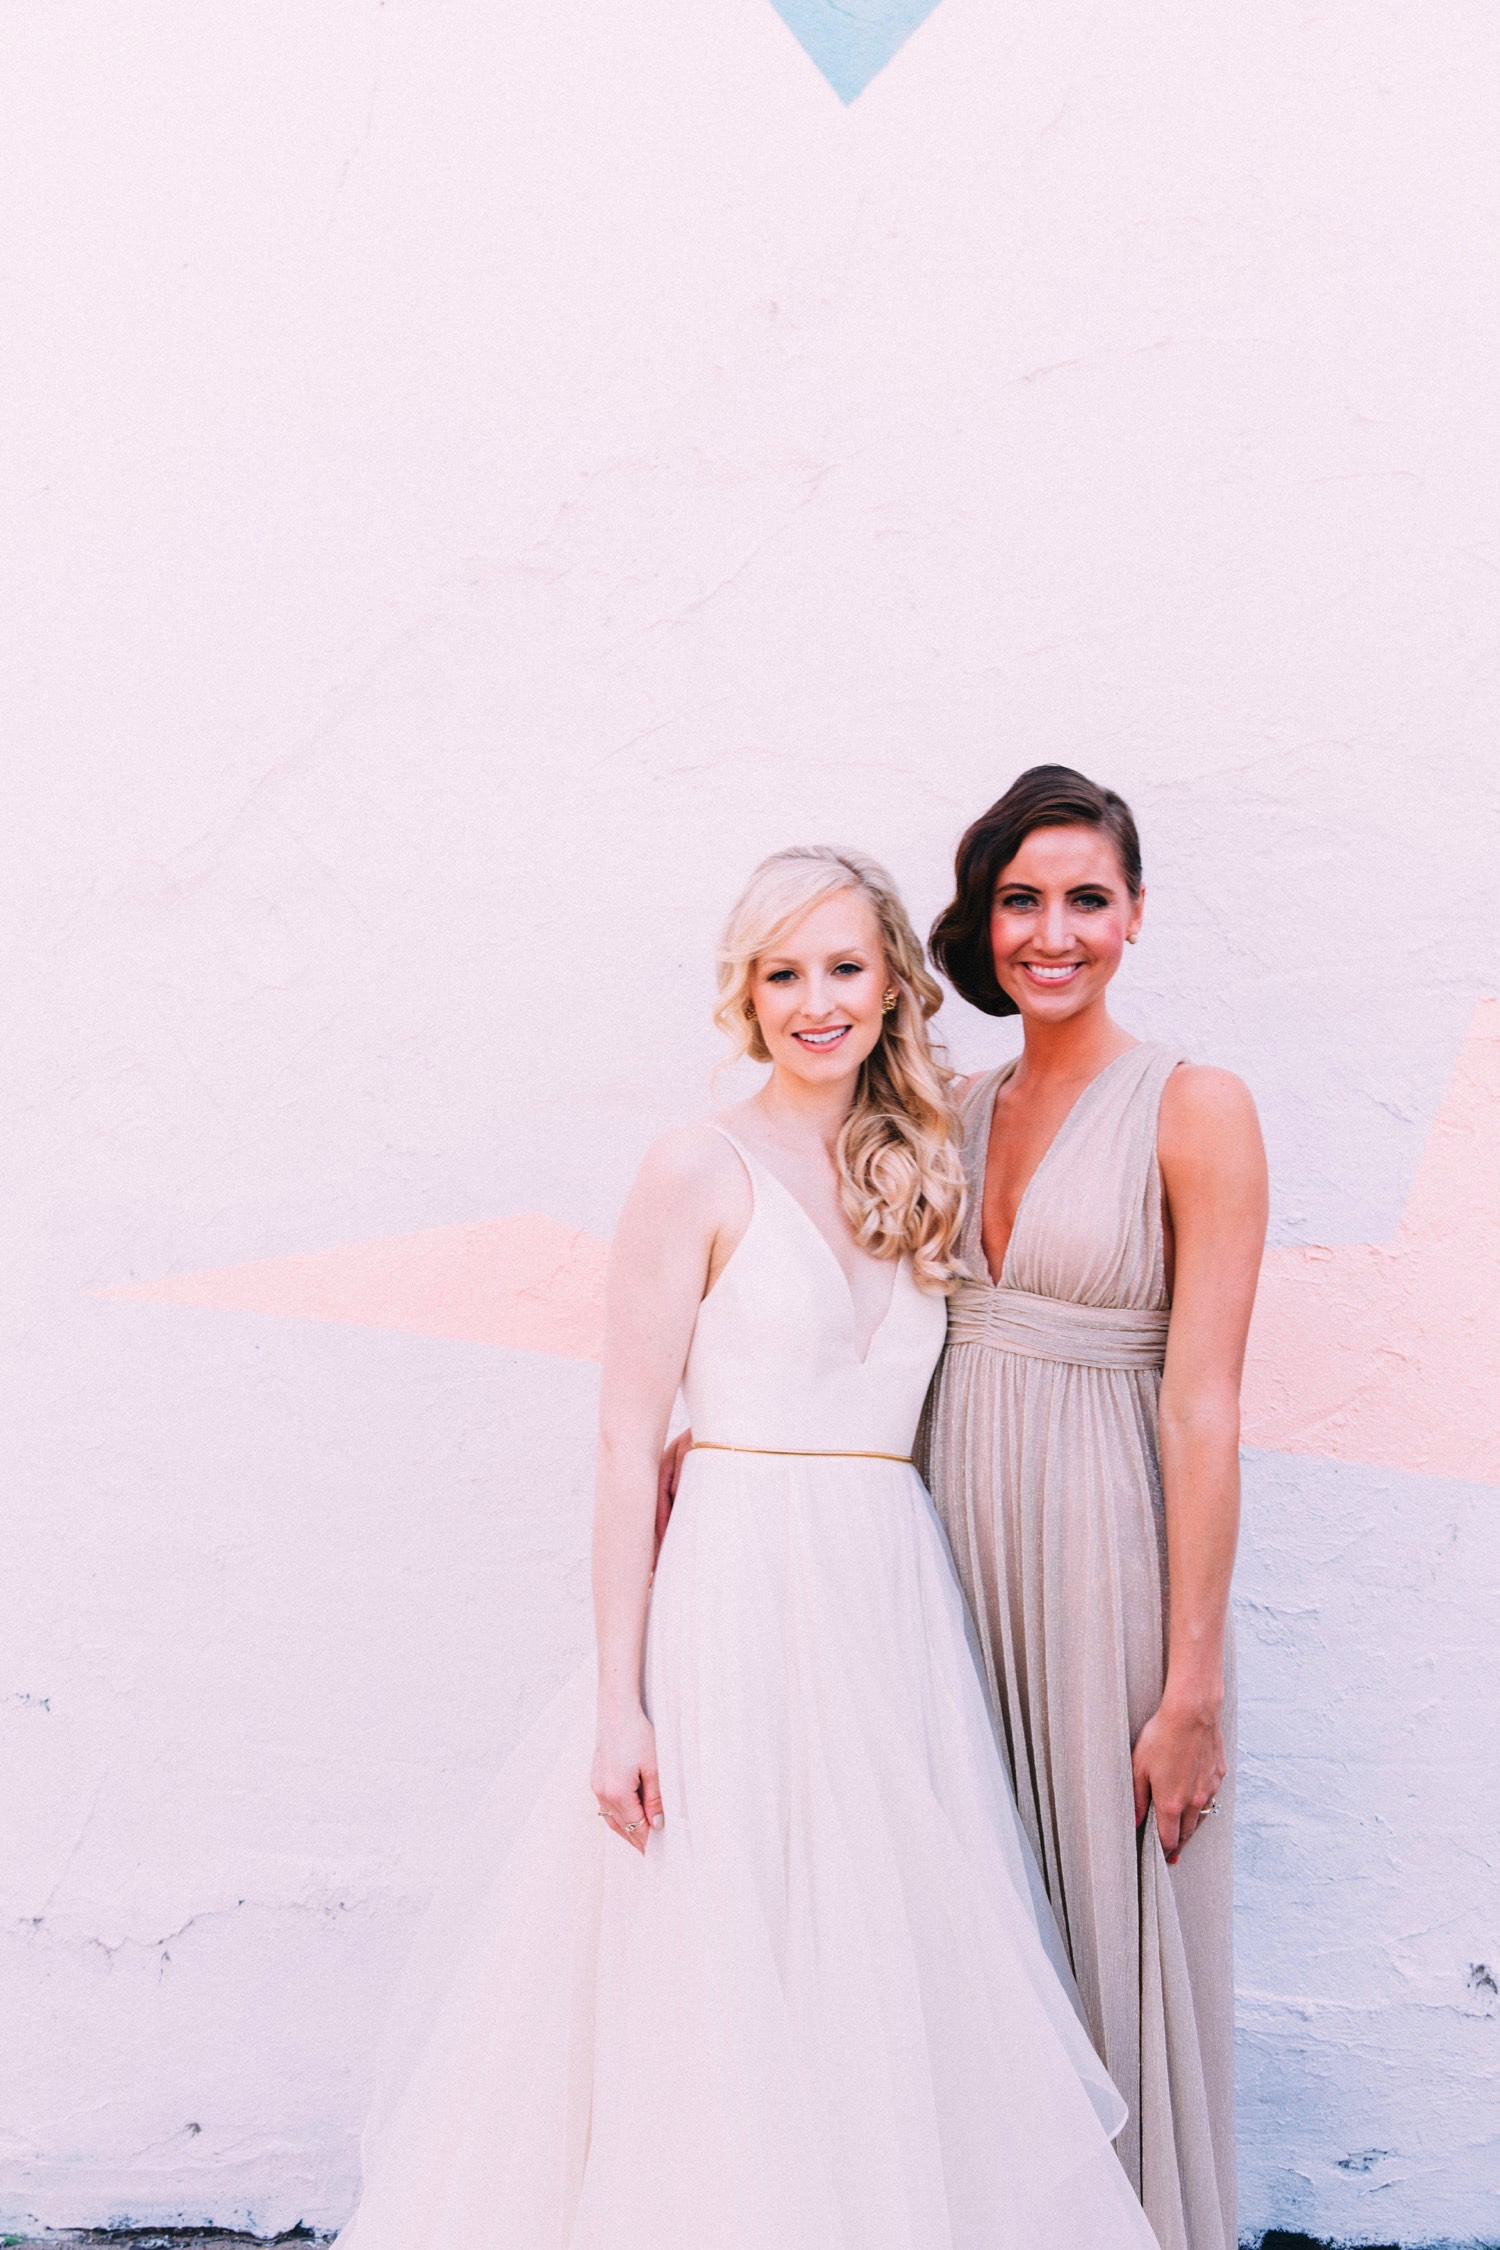 wedding at the Des Moines art center by anna jones